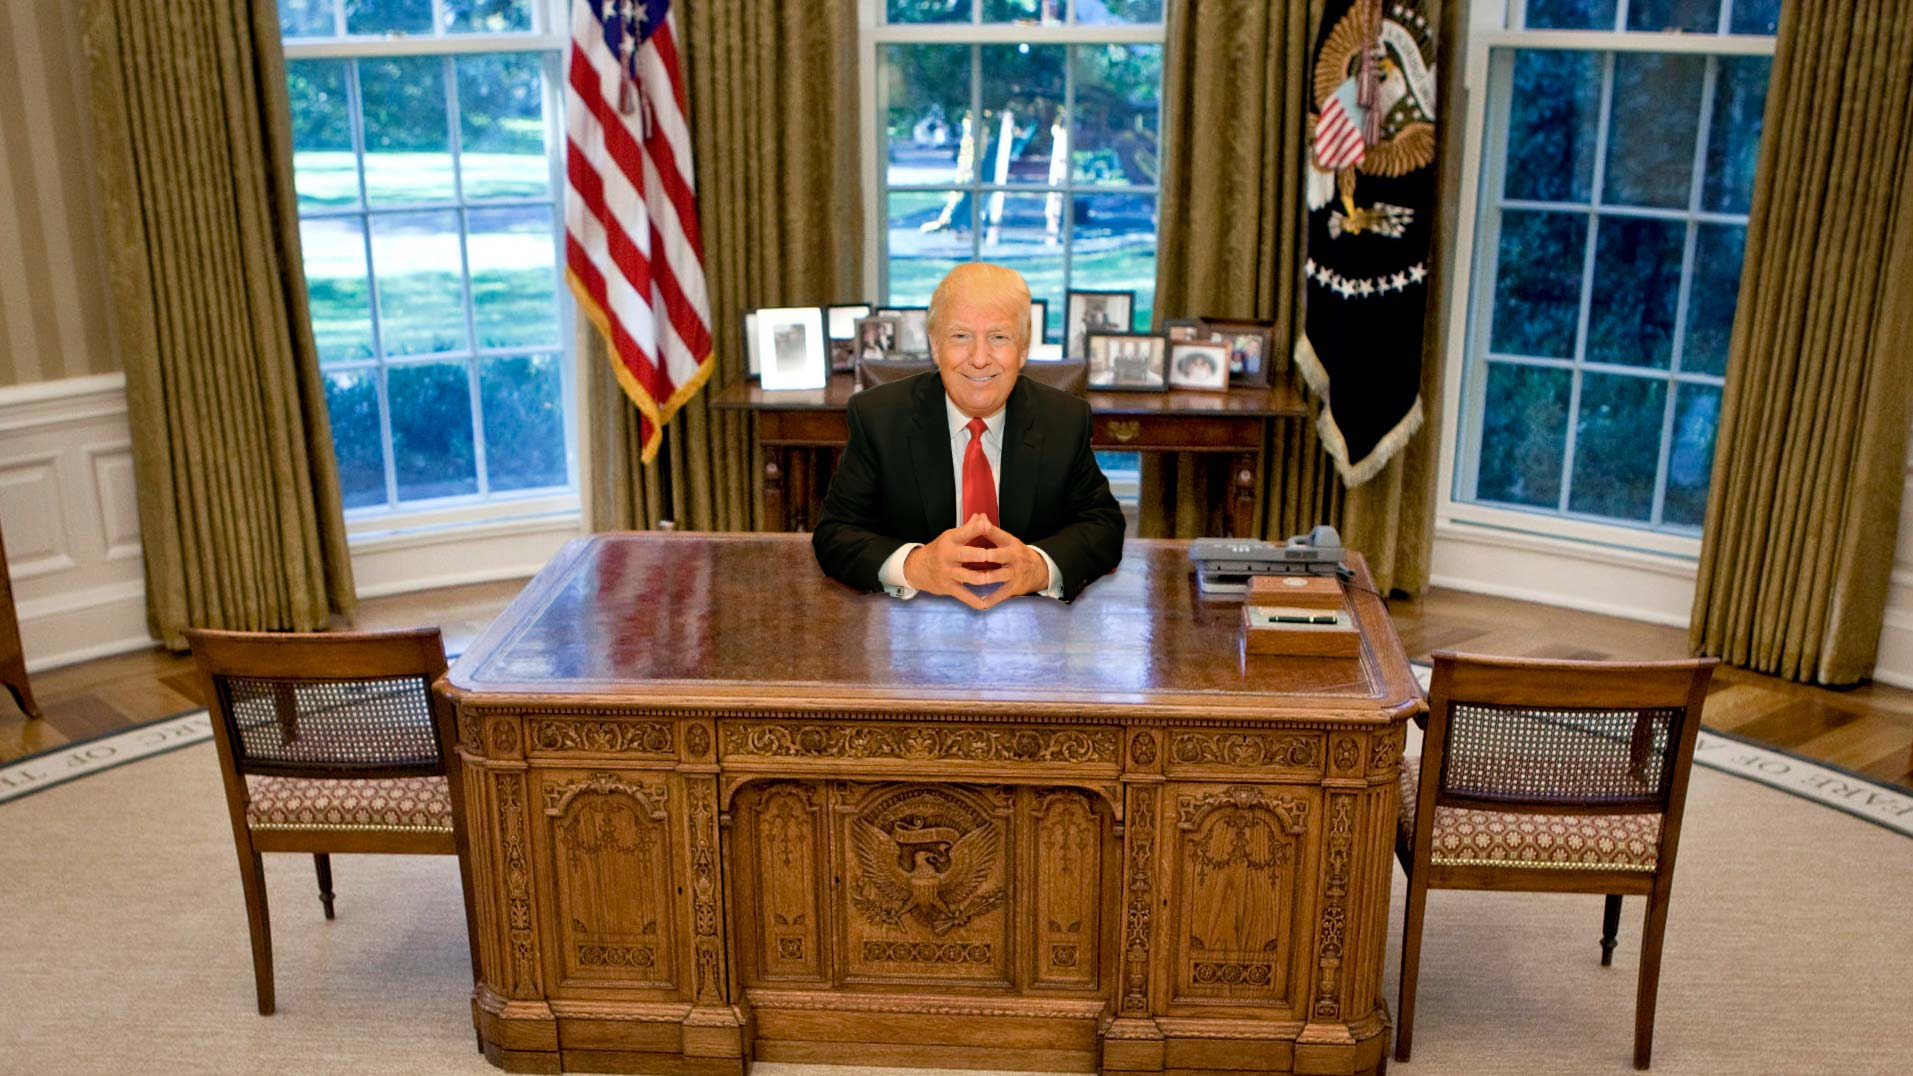 oval office chair comfy room chairs which of these 6 desks will donald trump pick